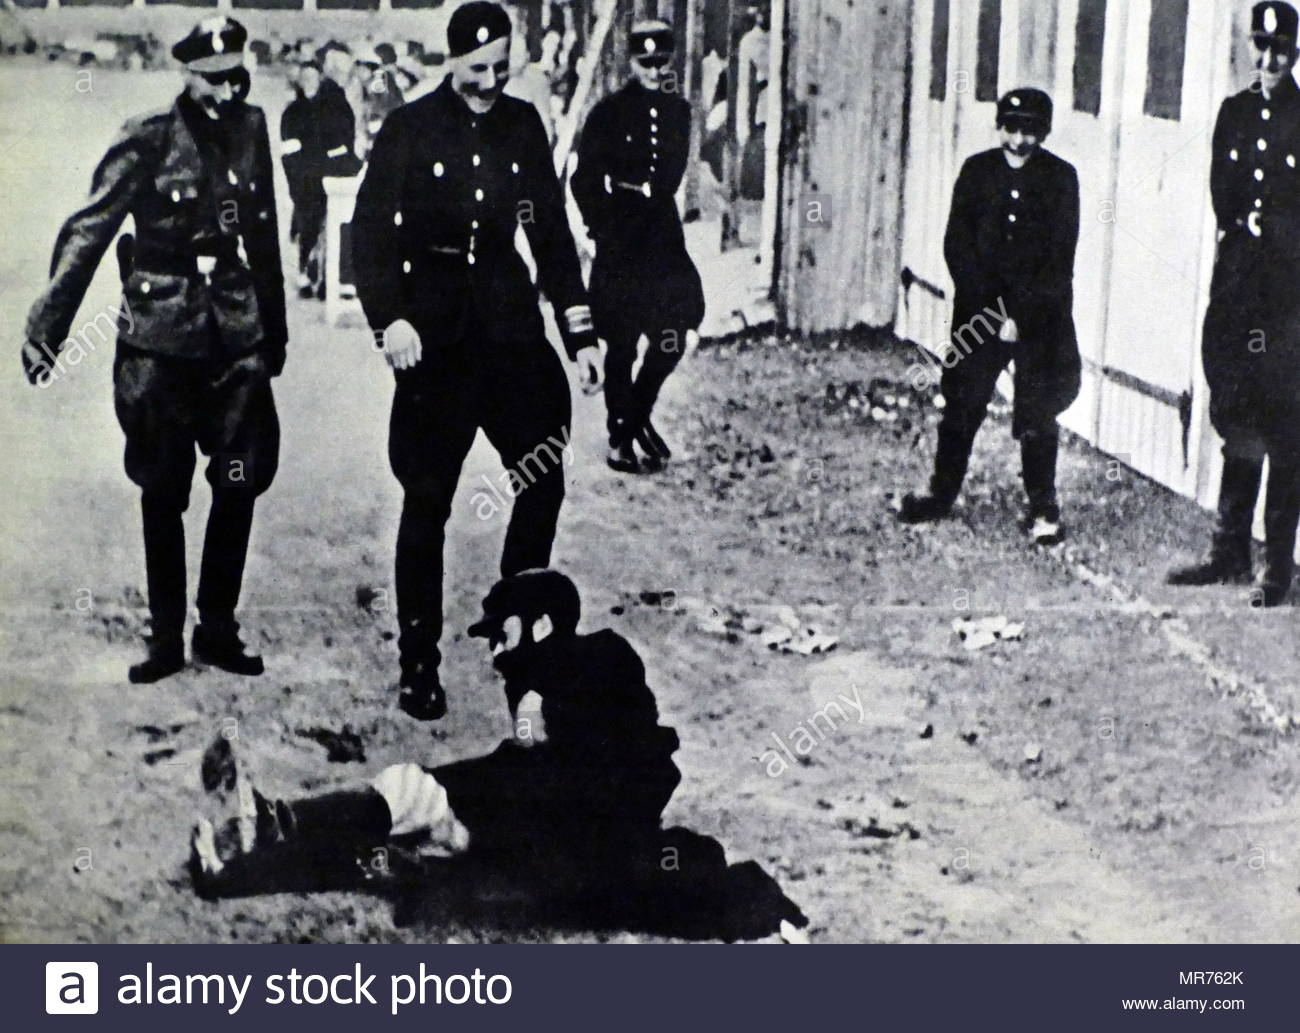 Nazi Police and soldiers attack a Jewish man in Gdansk, Poland after the German occupation of 1939 - Stock Image